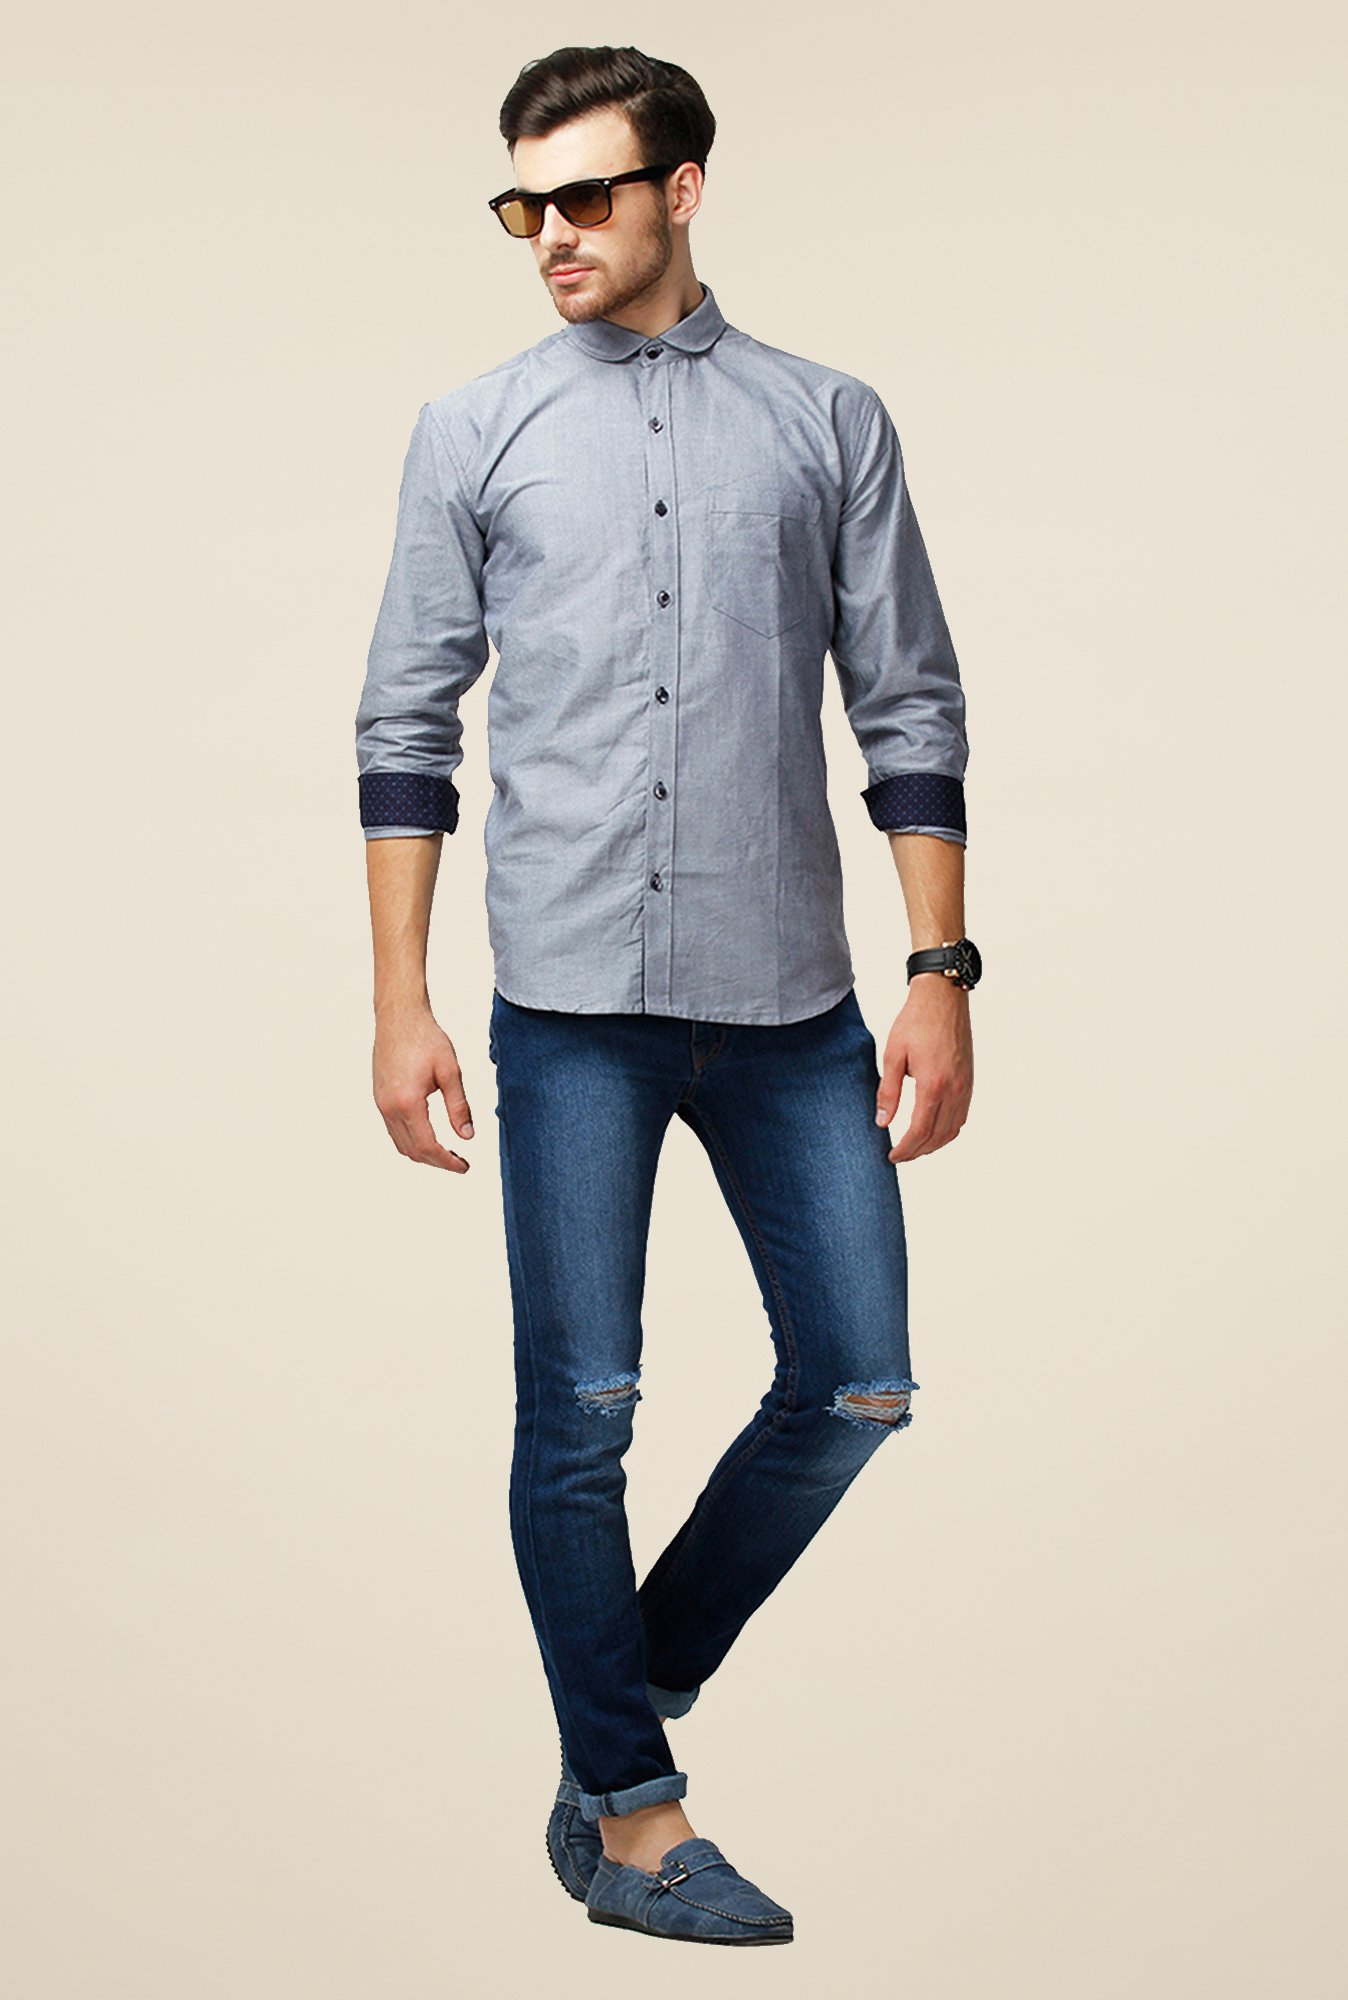 Yepme Grey Brokovich Premium Shirt